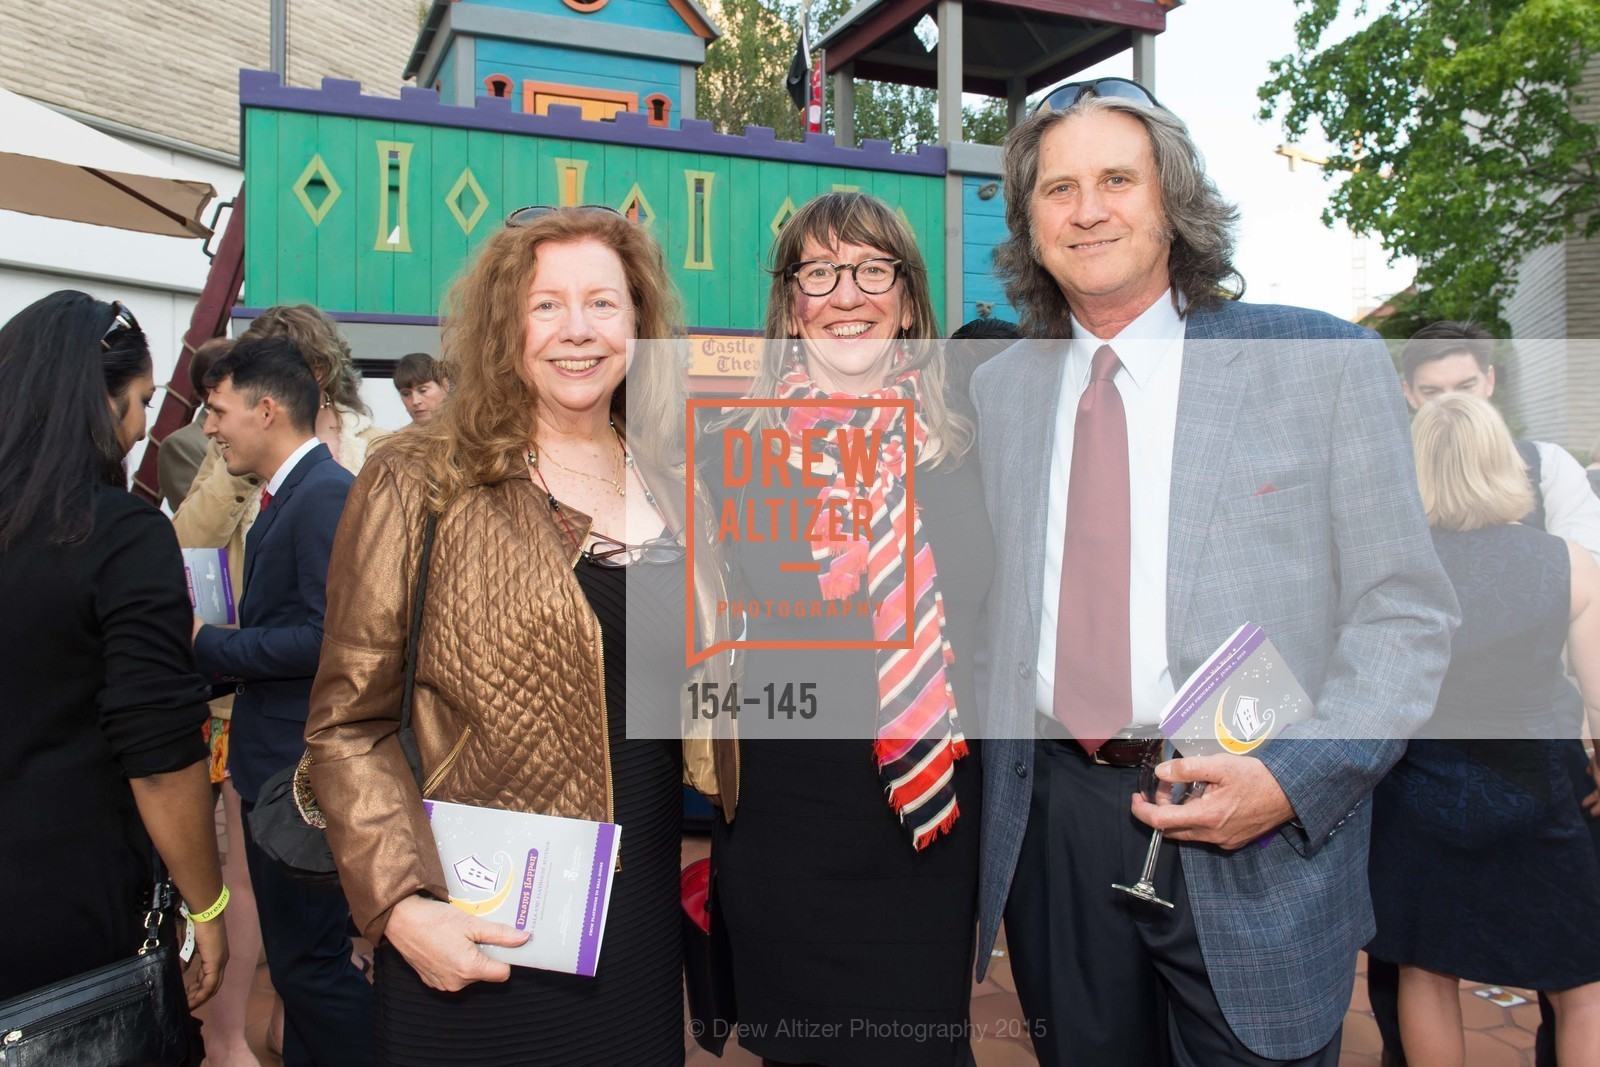 Suzanne Butler, Barbara Butler, James Butler, DREAMS HAPPEN: Playhouse Auction and Gala, Stanford Shopping Center, June 5th, 2015,Drew Altizer, Drew Altizer Photography, full-service agency, private events, San Francisco photographer, photographer california